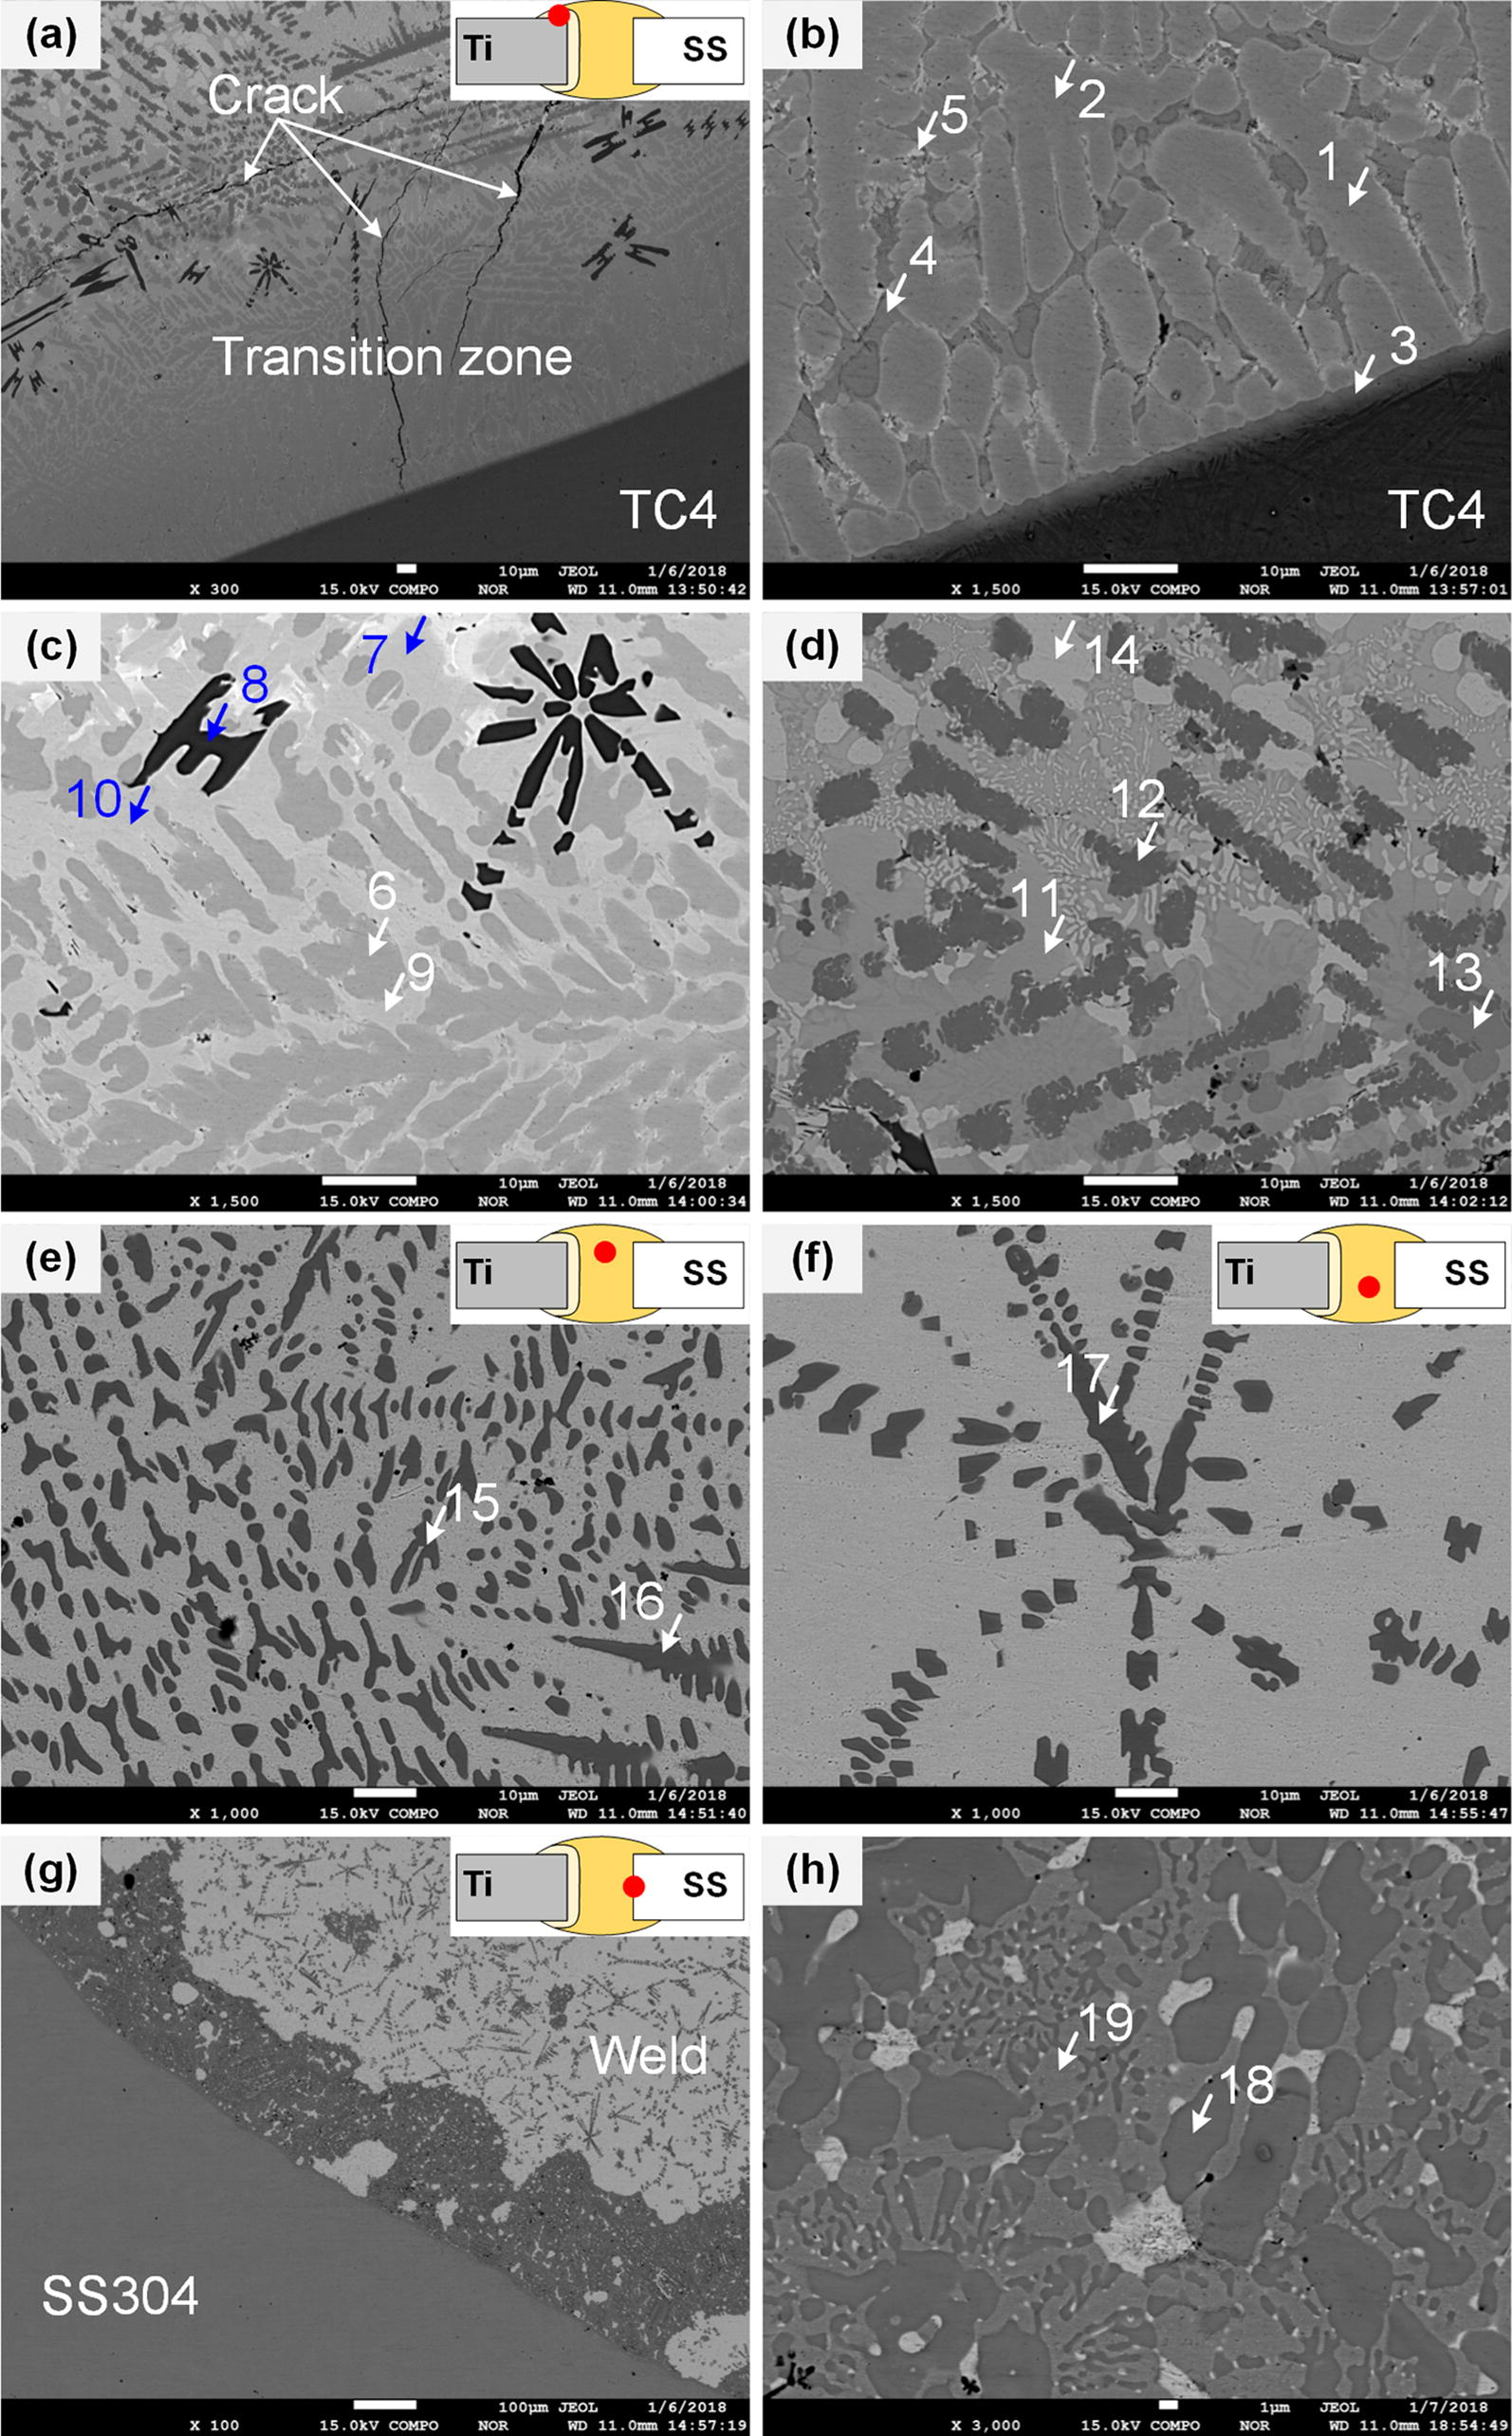 Microstructure and Mechanical Properties of Dissimilar TC4